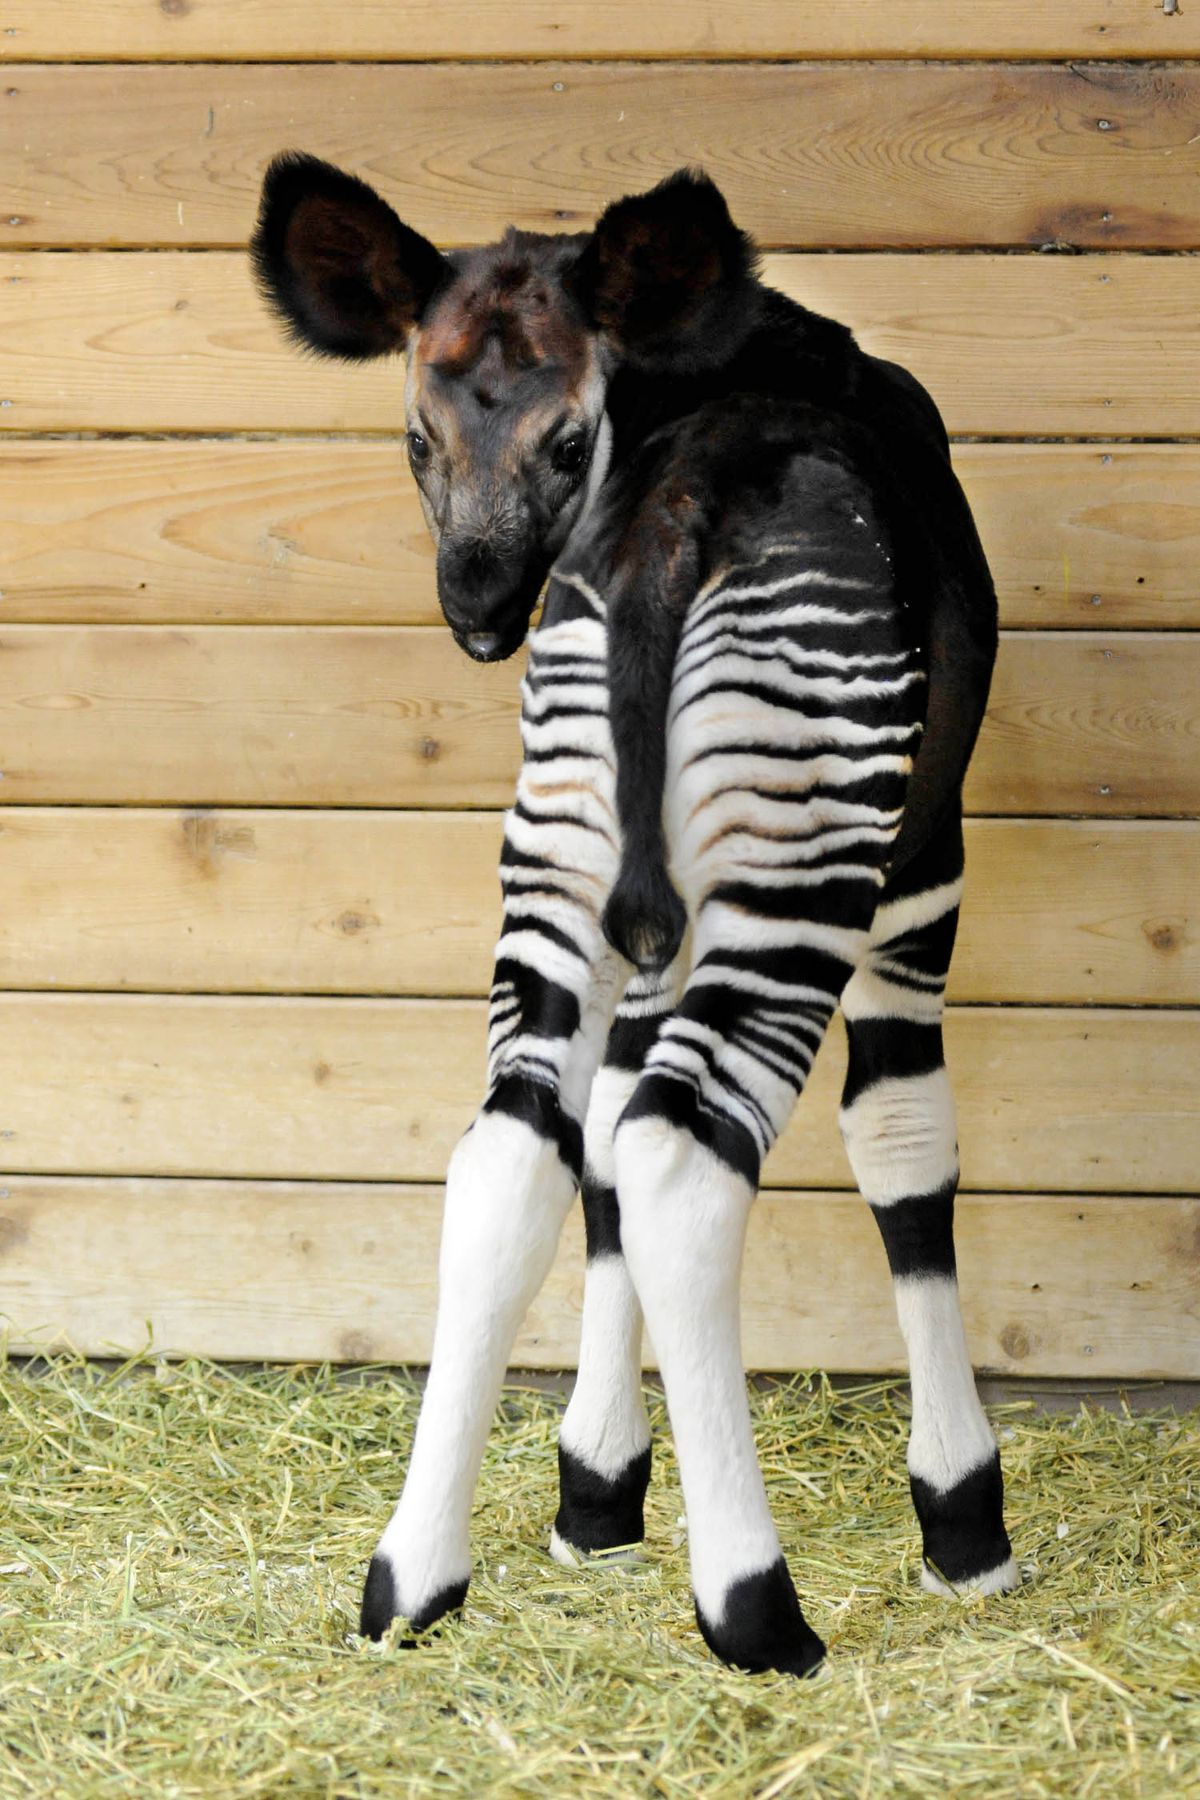 An okapi calf was born at Brookfield Zoo on April 21. |Jim Schulz/Chicago Zoological Society